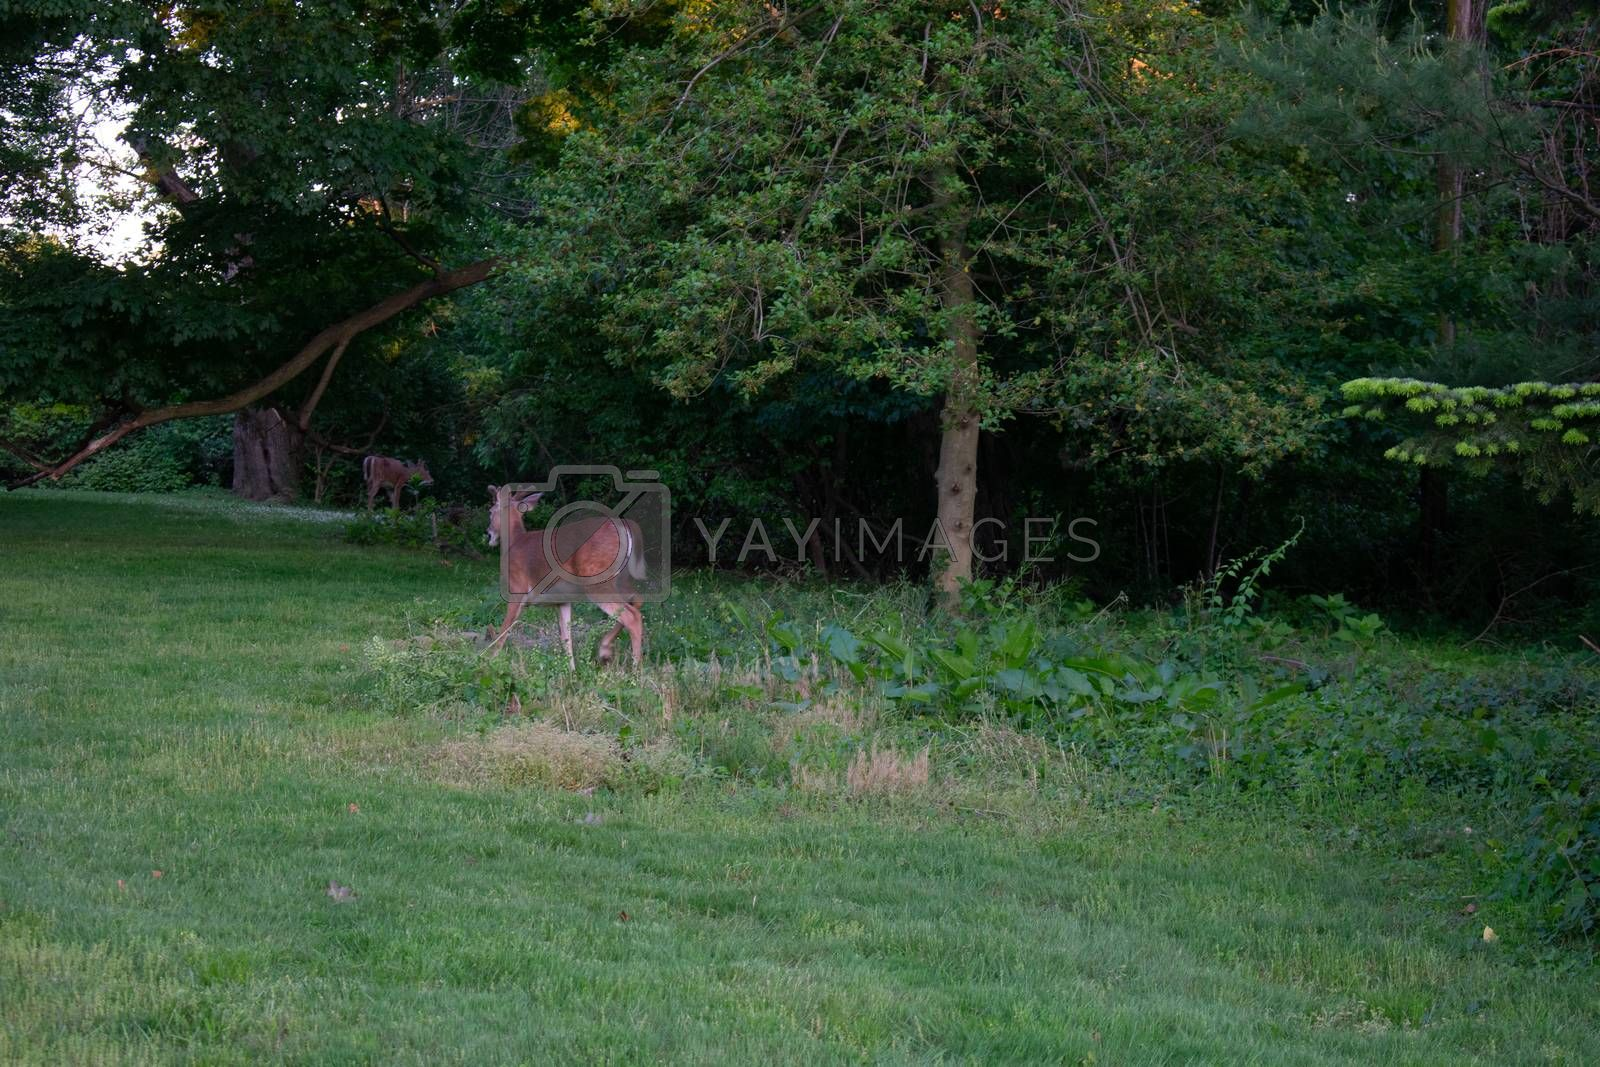 A Young Deer in a Patch of Grass in a Suburban Backyard